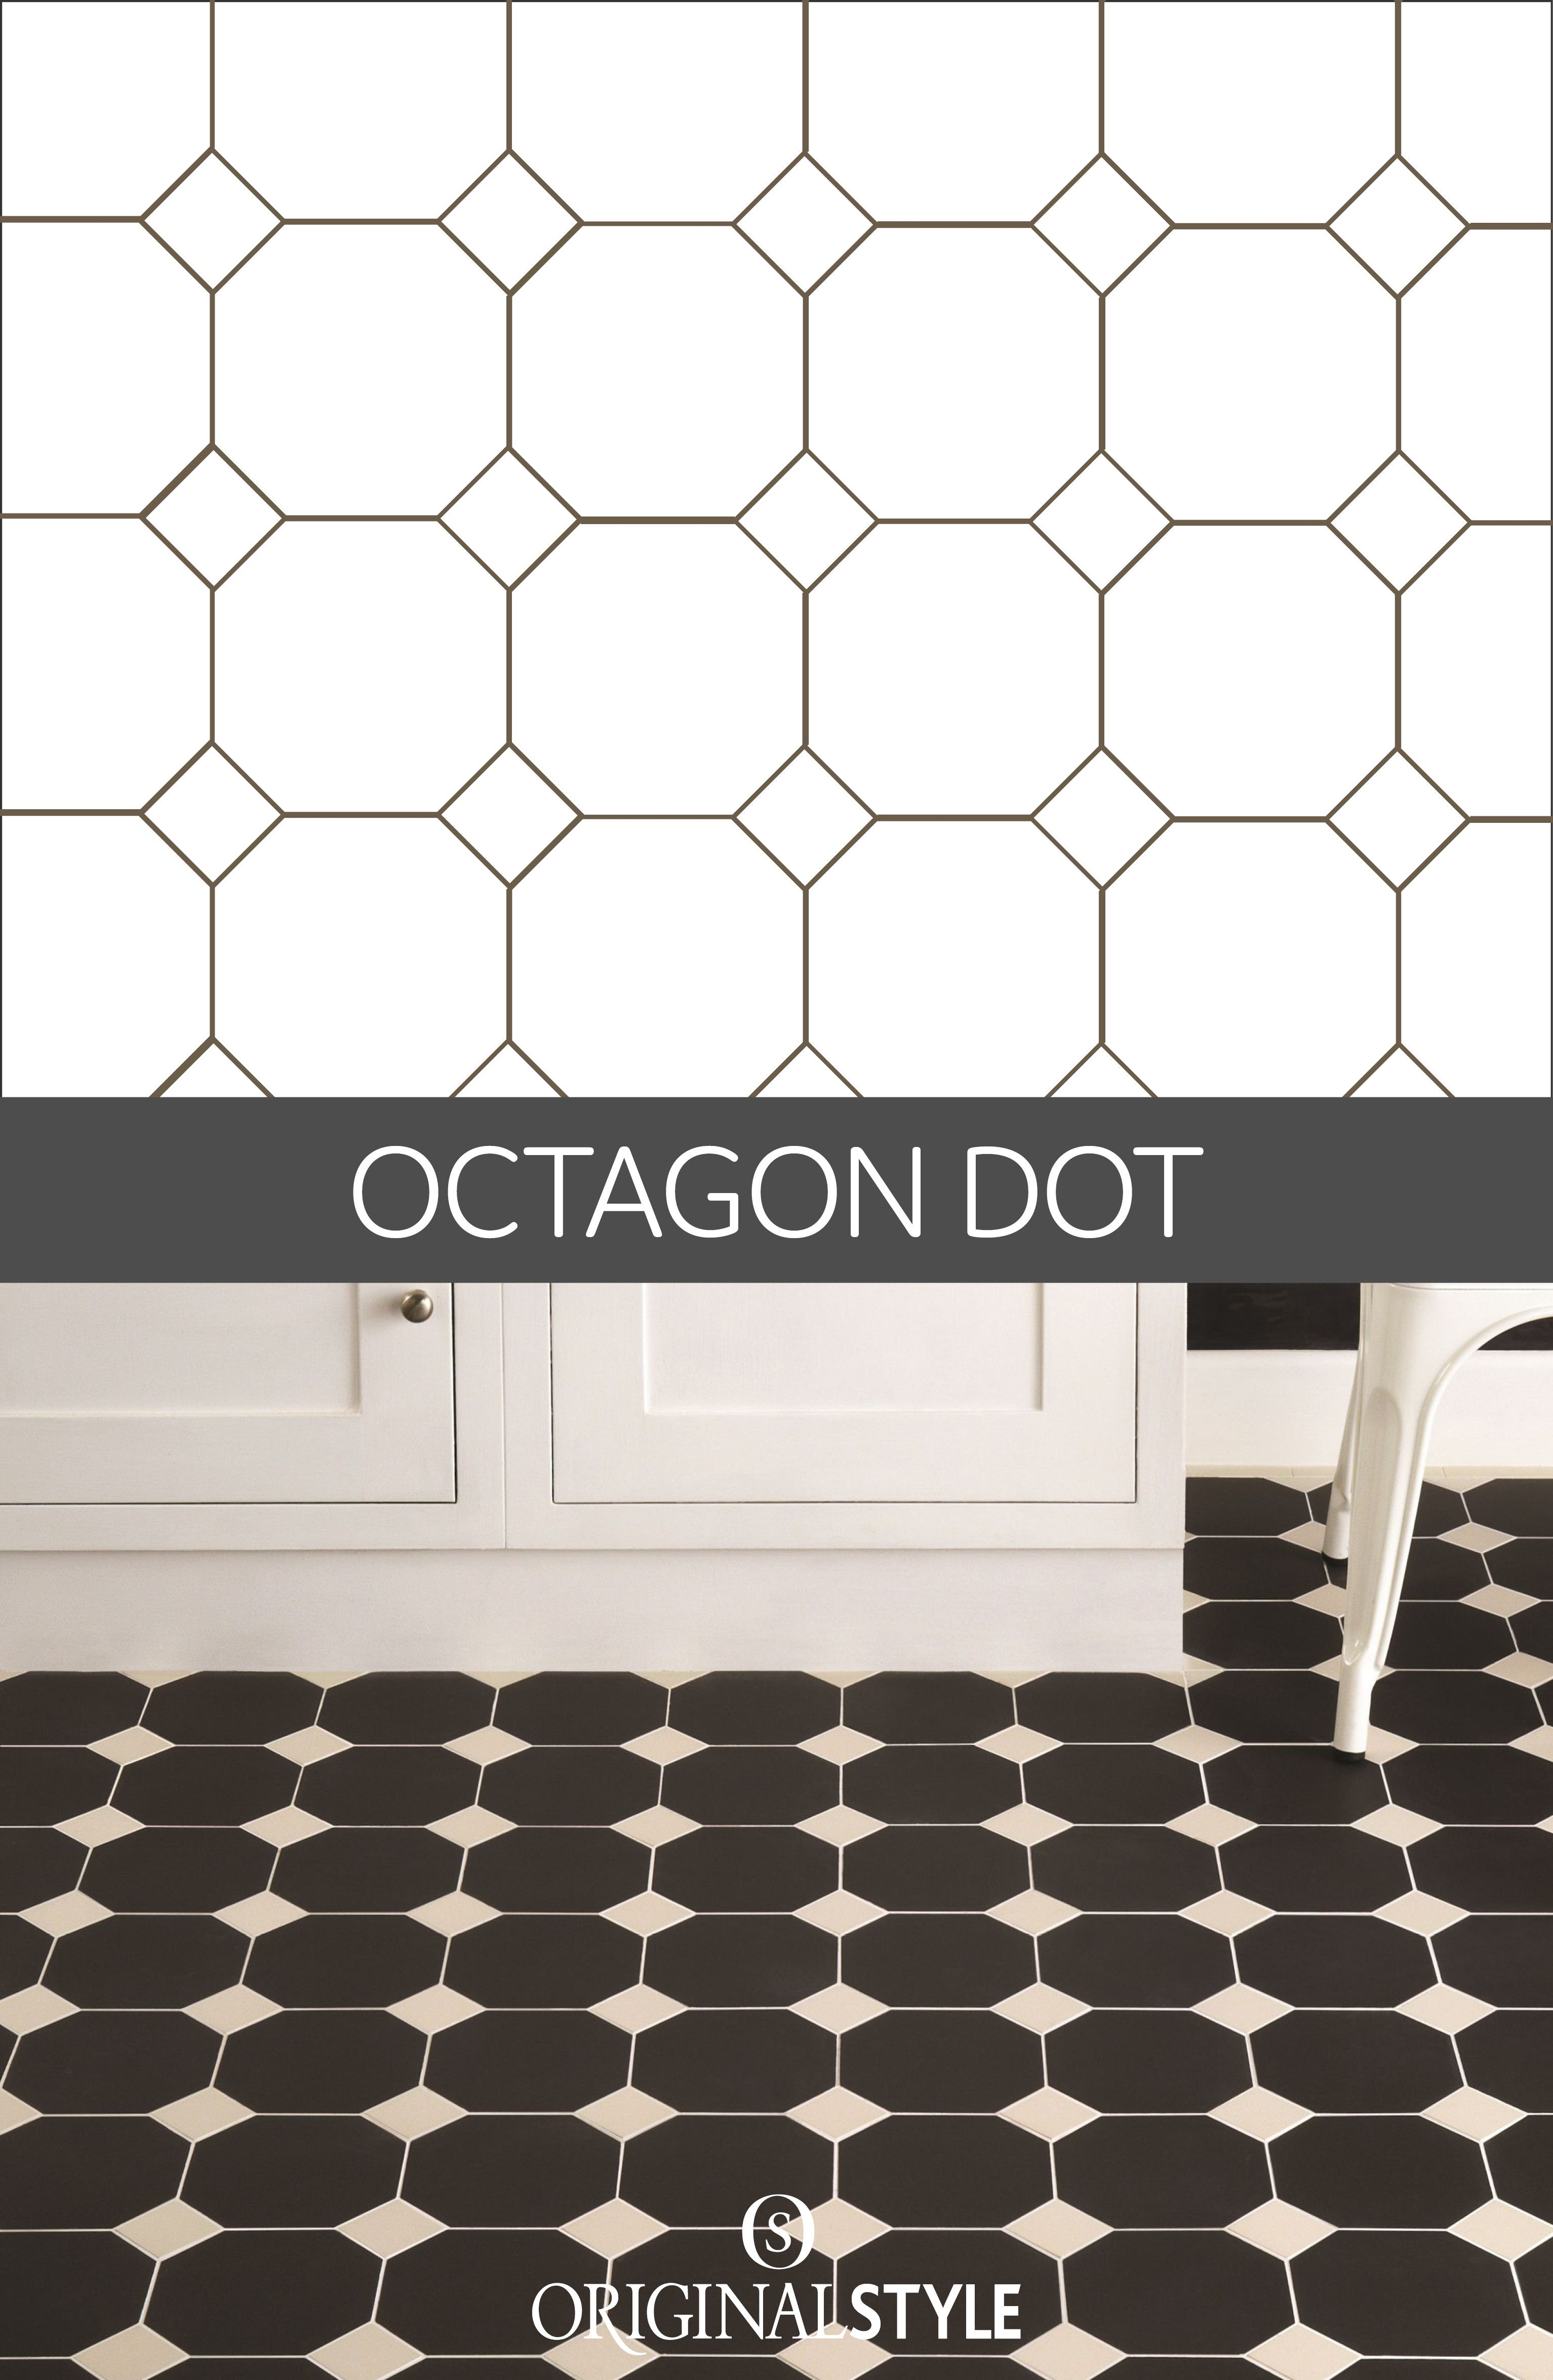 Fine 12X12 Floor Tile Tall 12X12 Tiles For Kitchen Backsplash Regular 12X24 Ceramic Tile Patterns 1930S Floor Tiles Reproduction Youthful 200X200 Floor Tiles Red3 X 6 Glass Subway Tile Your Guide To Tile Pattern Layouts | Tile Patterns, Layouts And ..